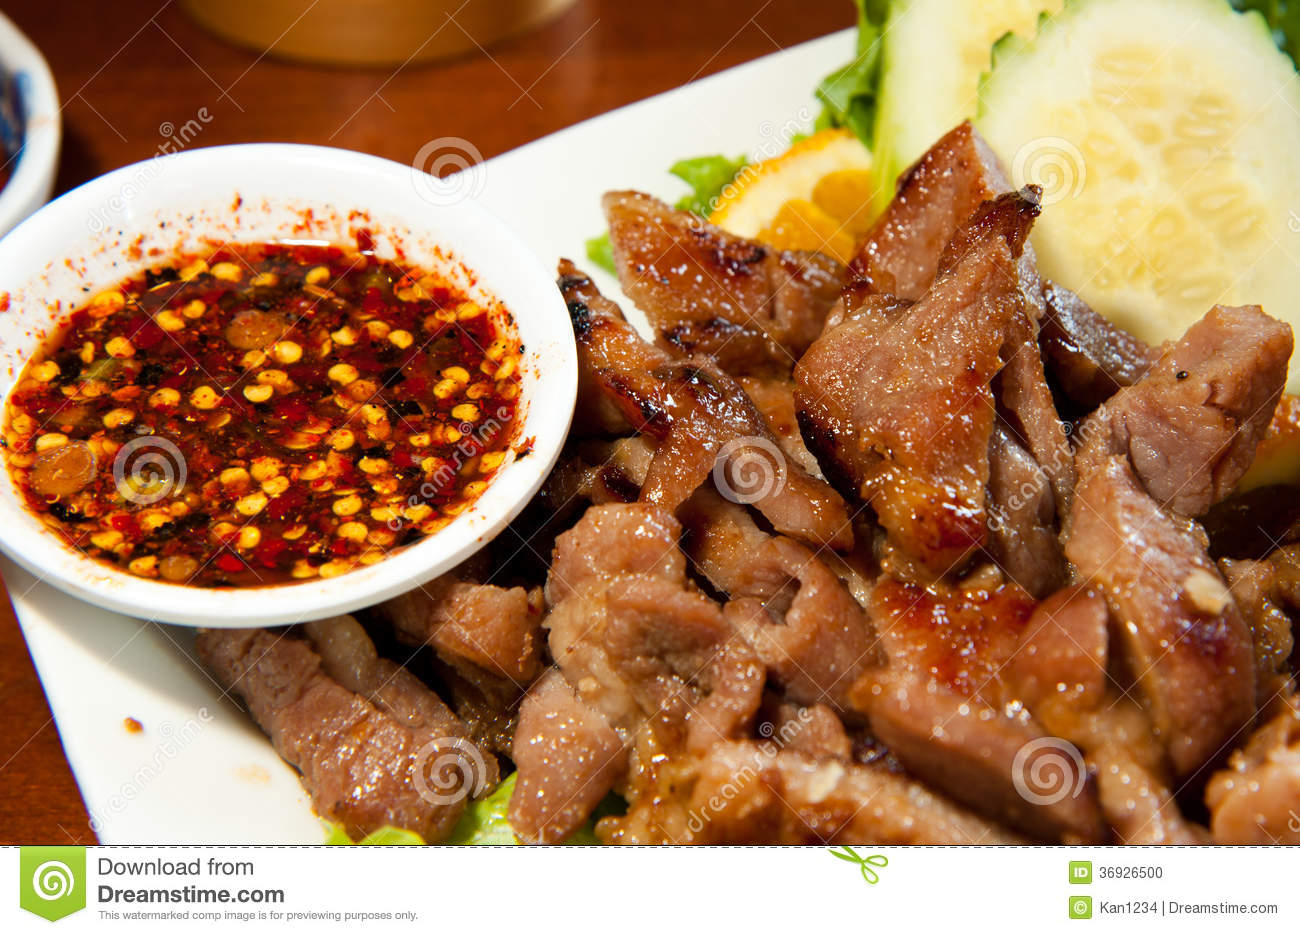 Grill Pork Neck Thai Style Stock Photo - Image: 36926500